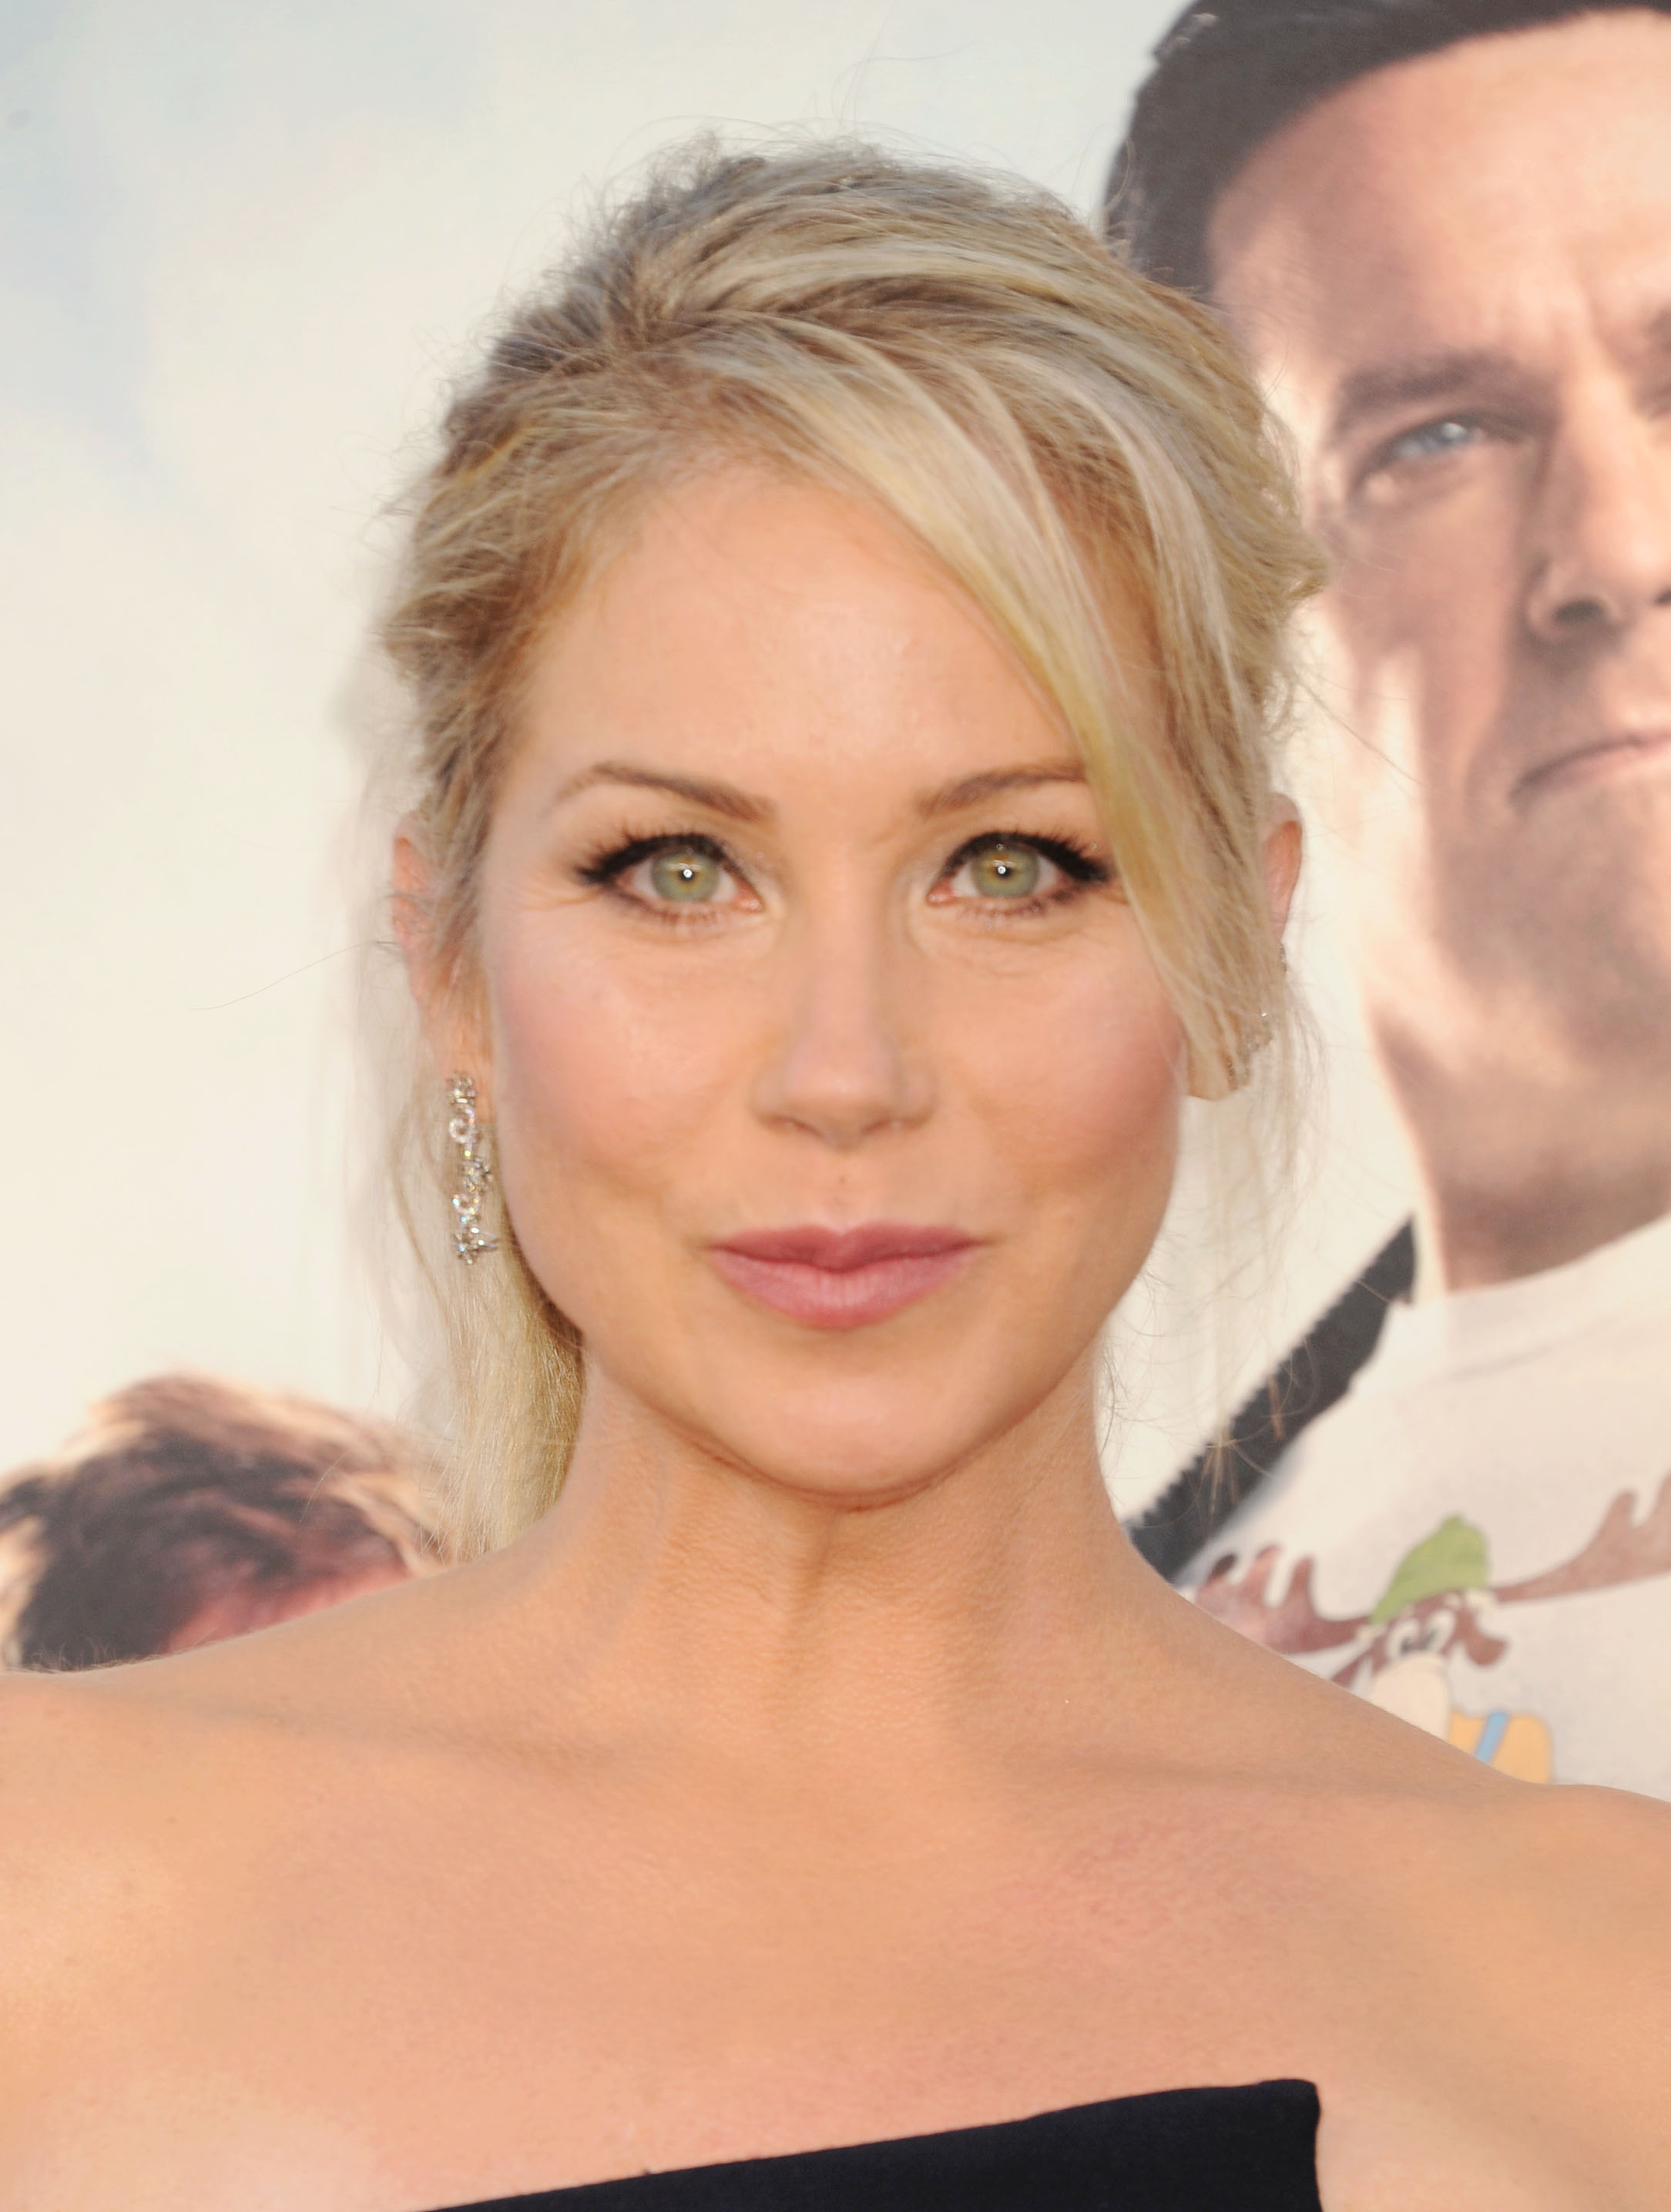 Actress Christina Applegate arrives at the Premiere Of Warner Bros. 'Vacation' at Regency Village Theatre on July 27, 2015 in Westwood, California.